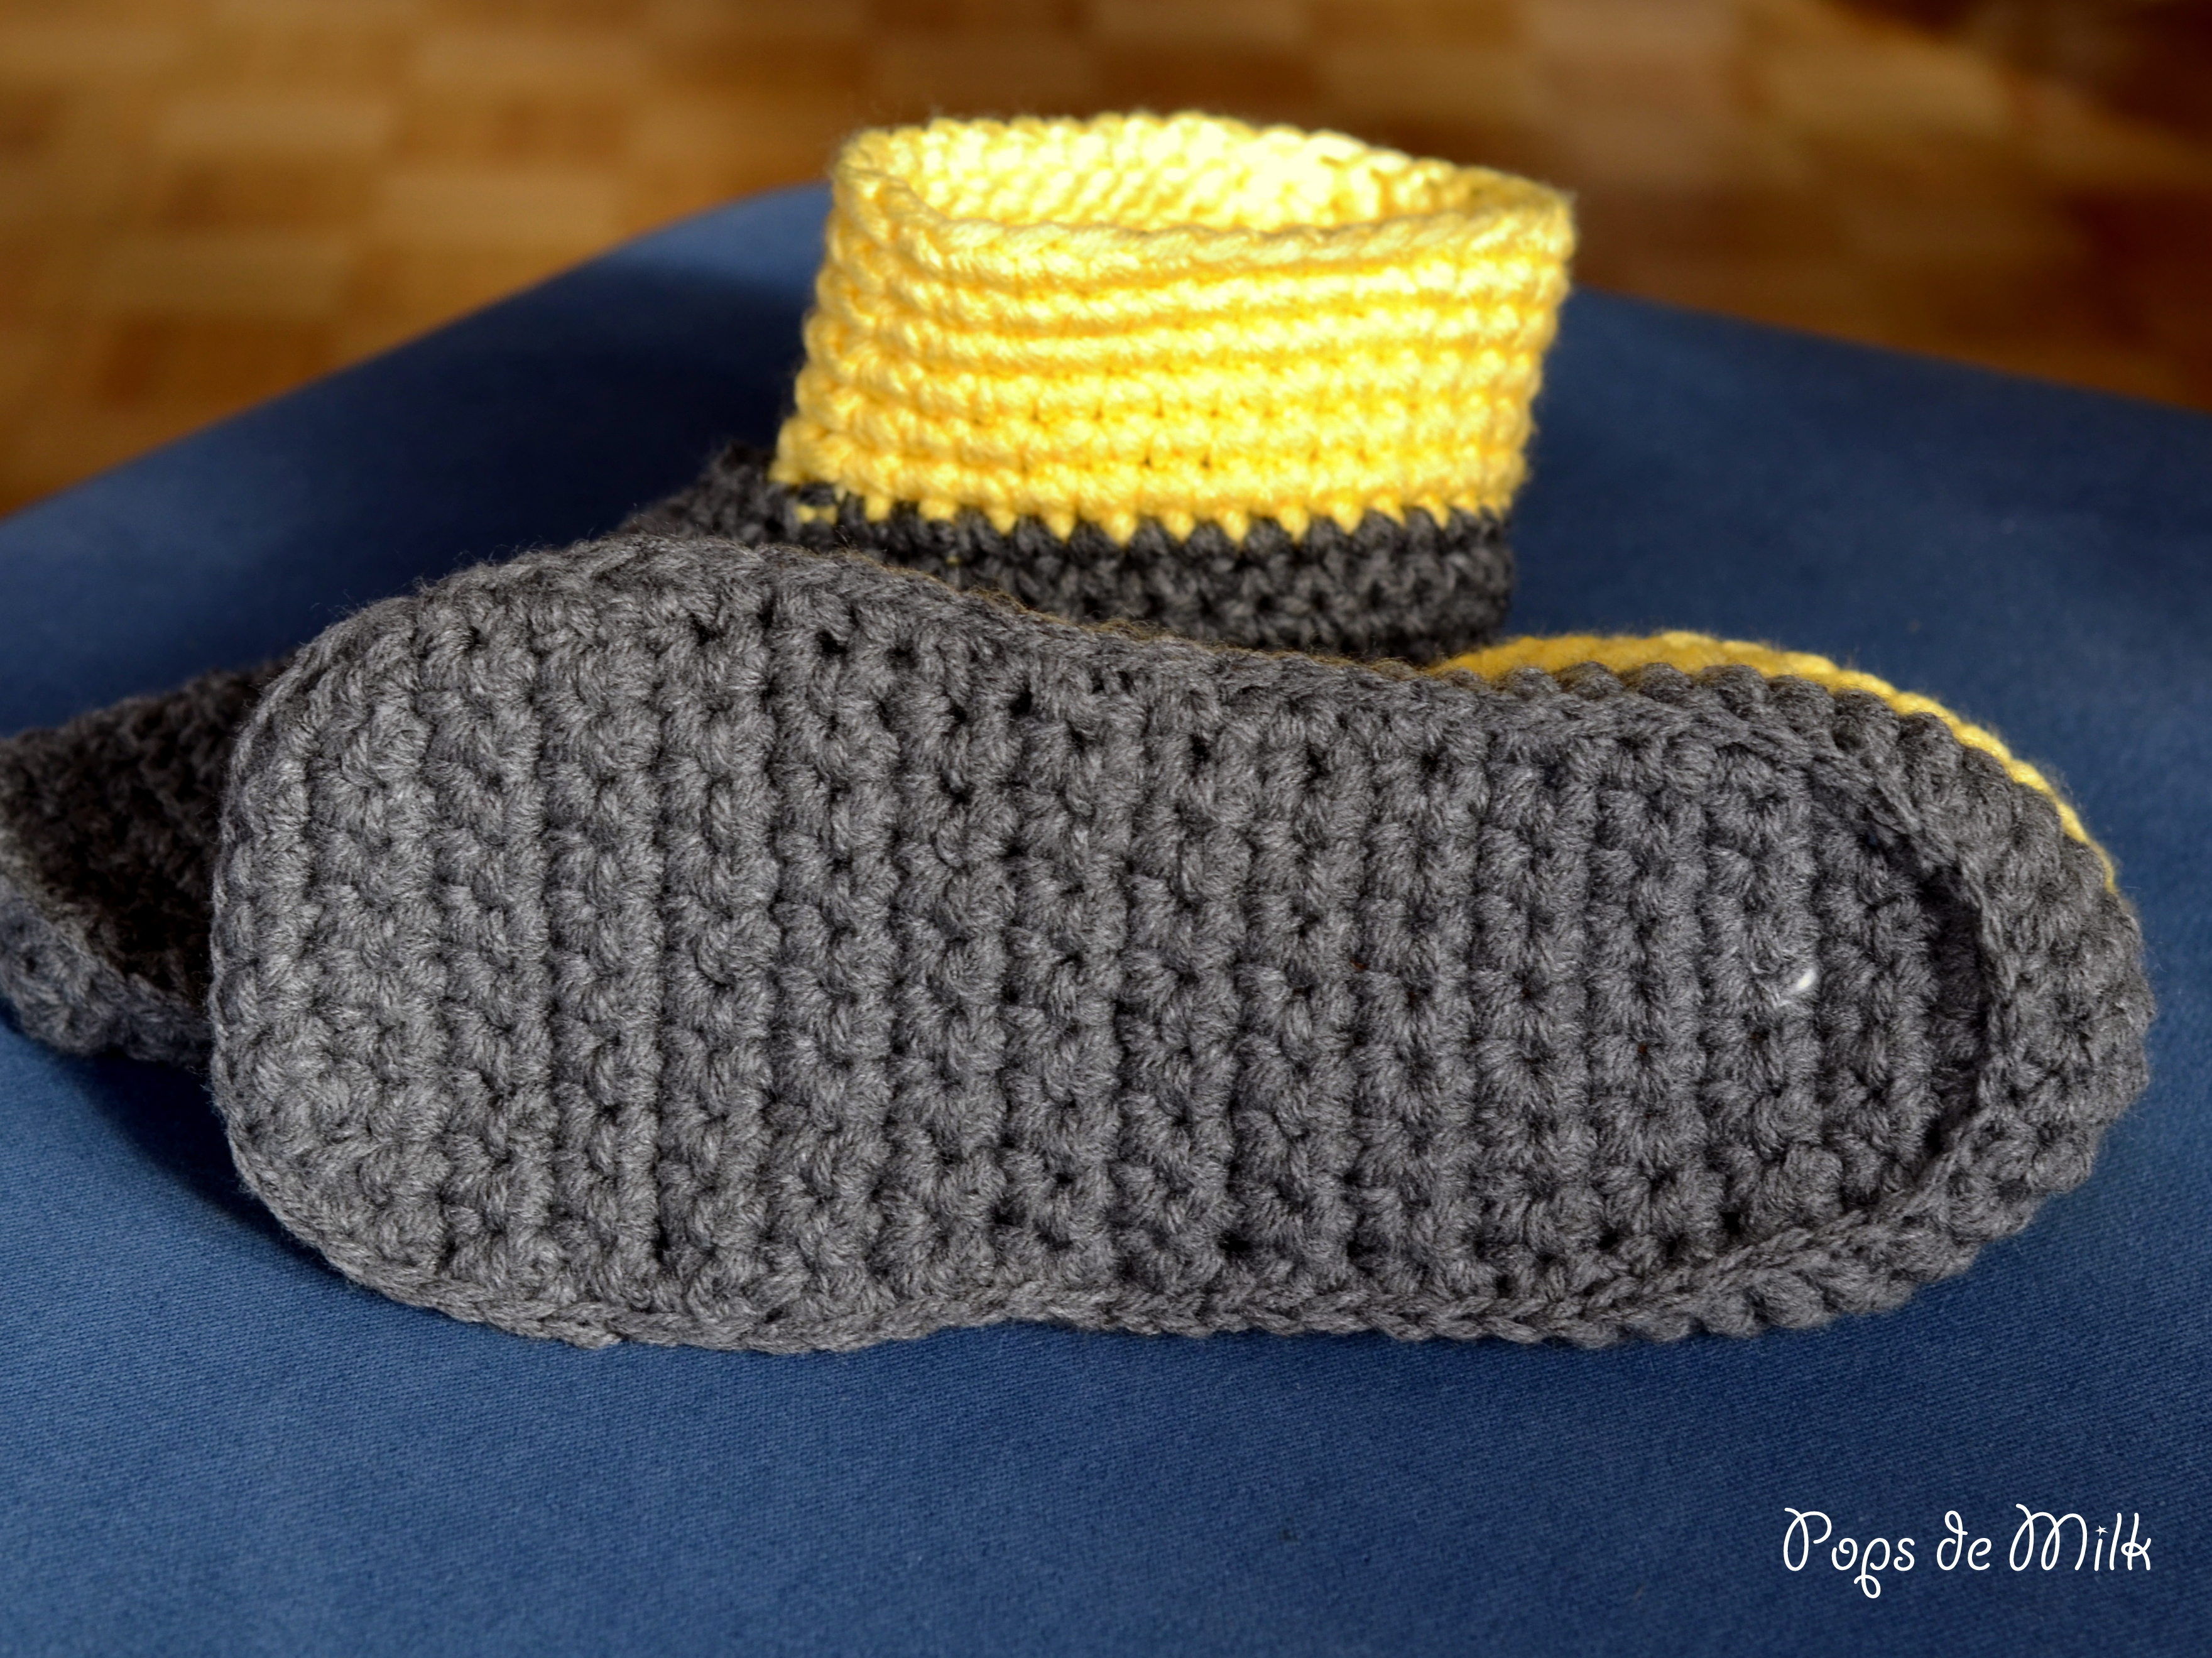 Crochet Boot Slippers I Added The Felt Soles I Made Last Week So They Are  Wonderfully Cushioned And So Very Warm